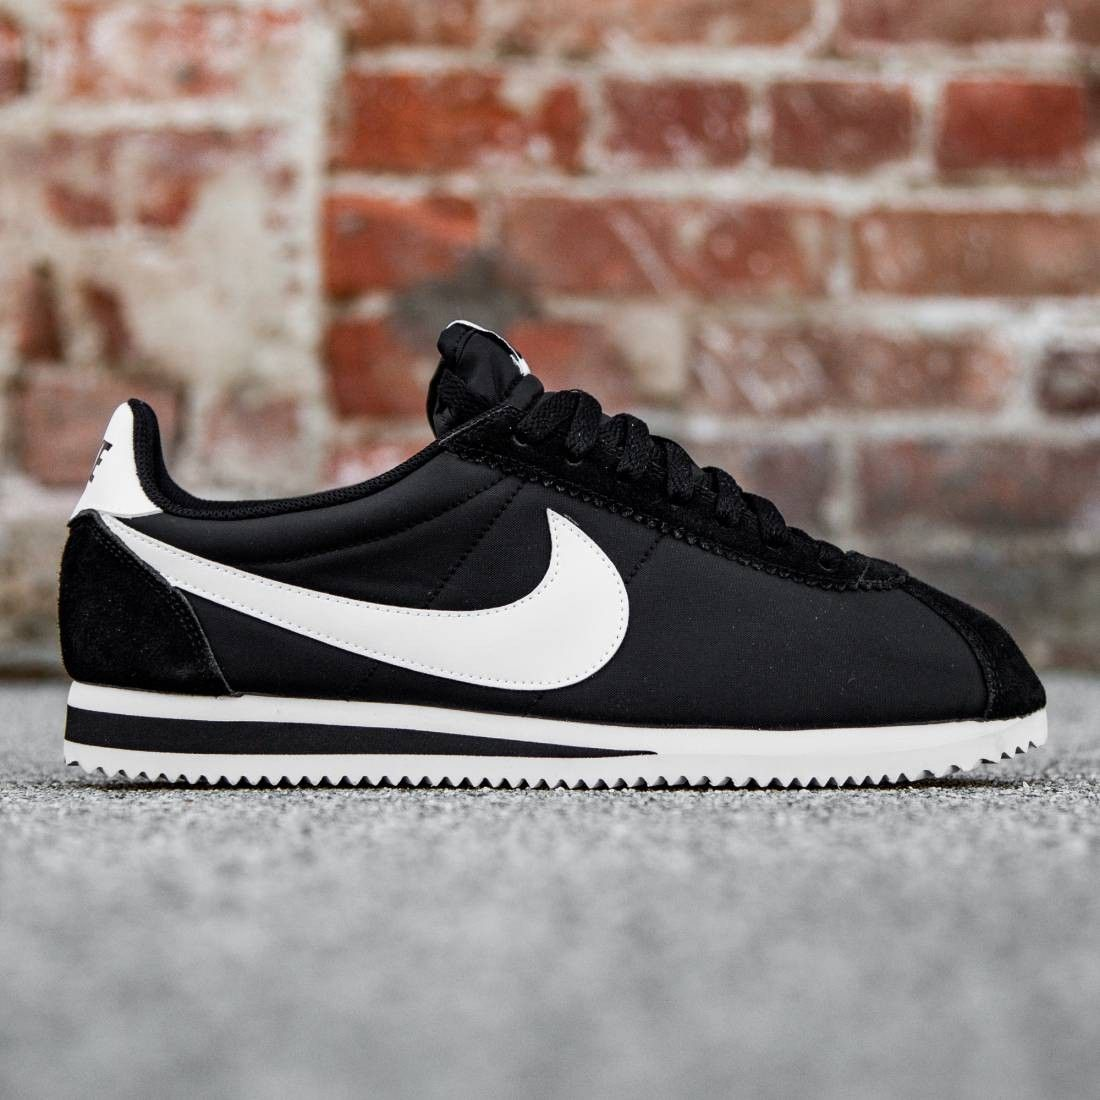 Shopping 165048 Nike Classic Cortez Nylon Qs Aloha Women Black Shoes